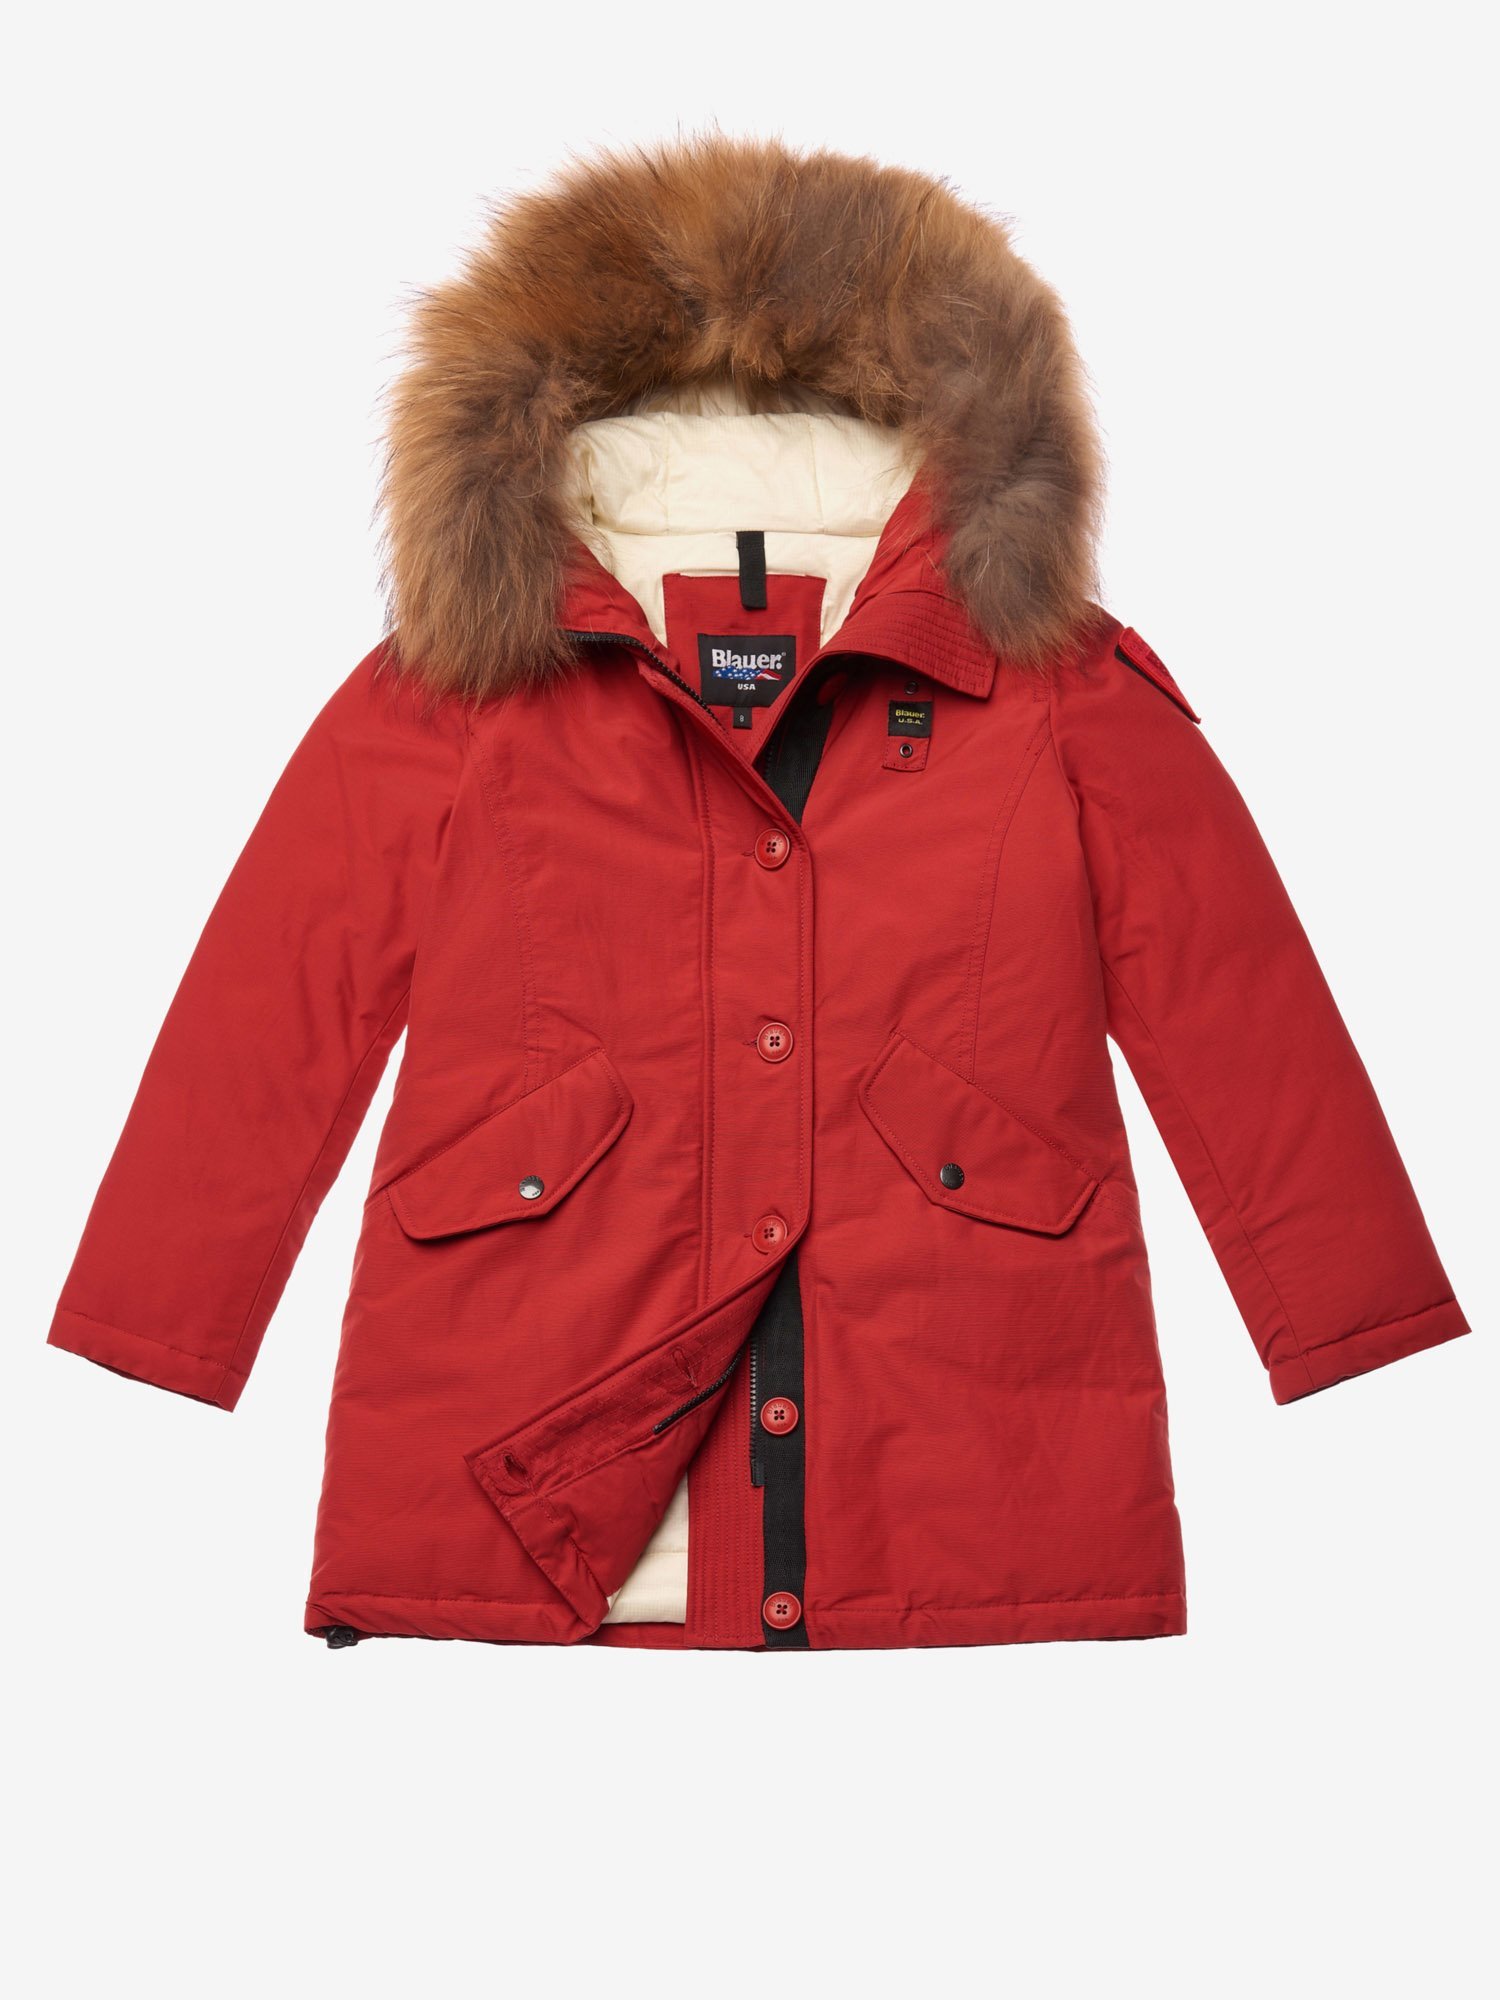 BALL  PARKA IN LIGHT TASLAN - Blauer